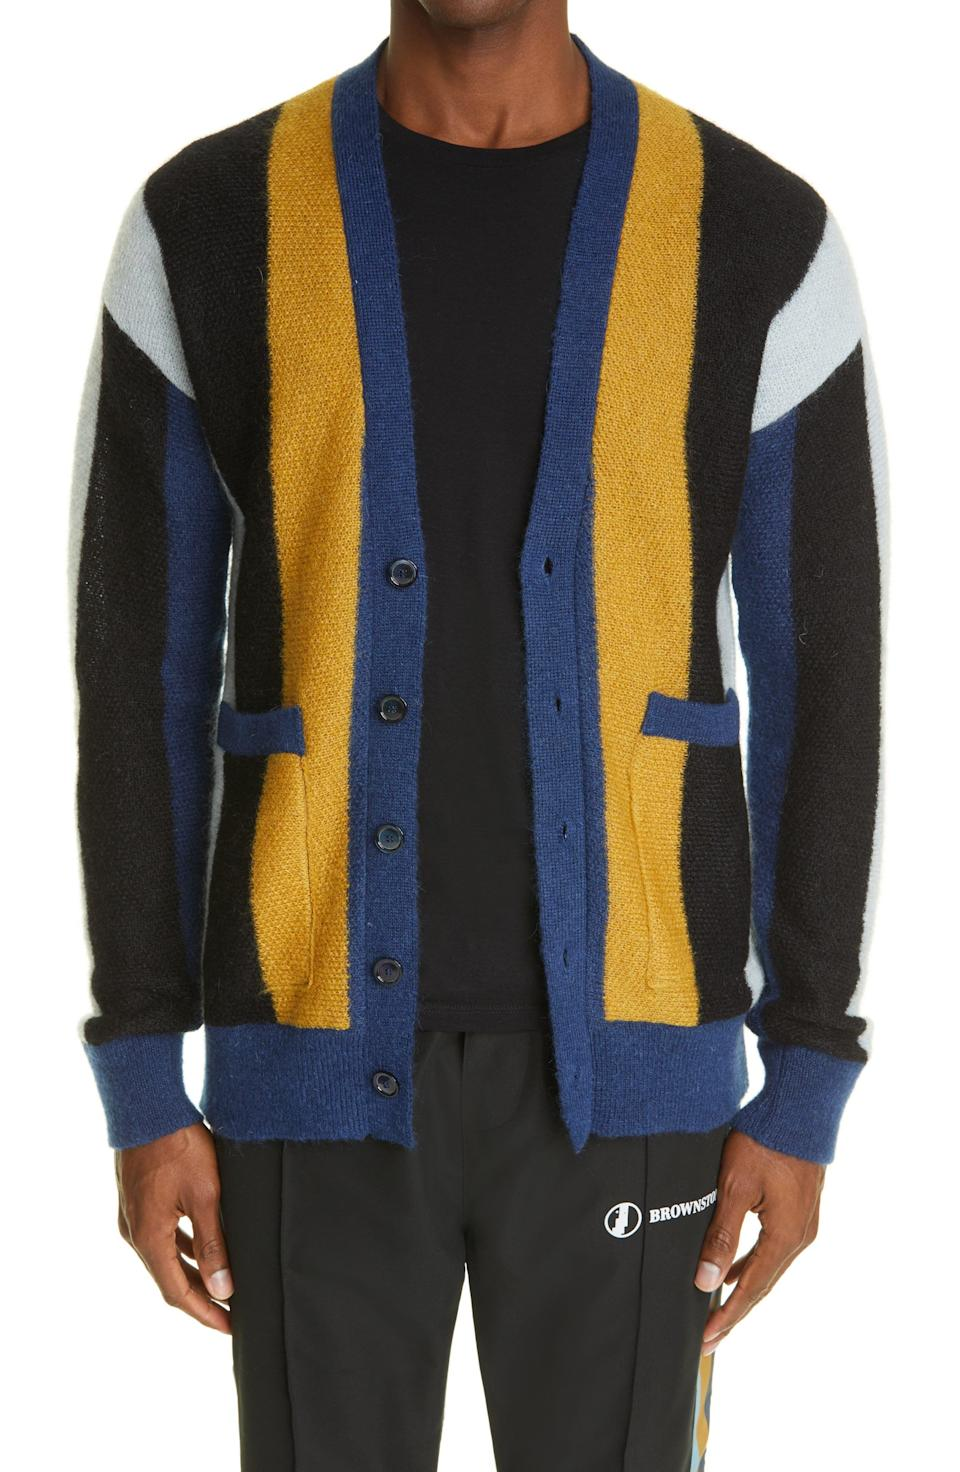 """<p><strong>BROWNSTONE</strong></p><p>nordstrom.com</p><p><strong>$279.00</strong></p><p><a href=""""https://go.redirectingat.com?id=74968X1596630&url=https%3A%2F%2Fwww.nordstrom.com%2Fs%2Fbrownstone-stripe-mohair-blend-cardigan%2F5900809&sref=https%3A%2F%2Fwww.esquire.com%2Fstyle%2Fg36535194%2Fnordstrom-mens-sale-half-yearly-spring-2021%2F"""" rel=""""nofollow noopener"""" target=""""_blank"""" data-ylk=""""slk:Shop Now"""" class=""""link rapid-noclick-resp"""">Shop Now</a></p><p>A statement cardigan that'll look good on cool nights now—and even better come fall.</p>"""